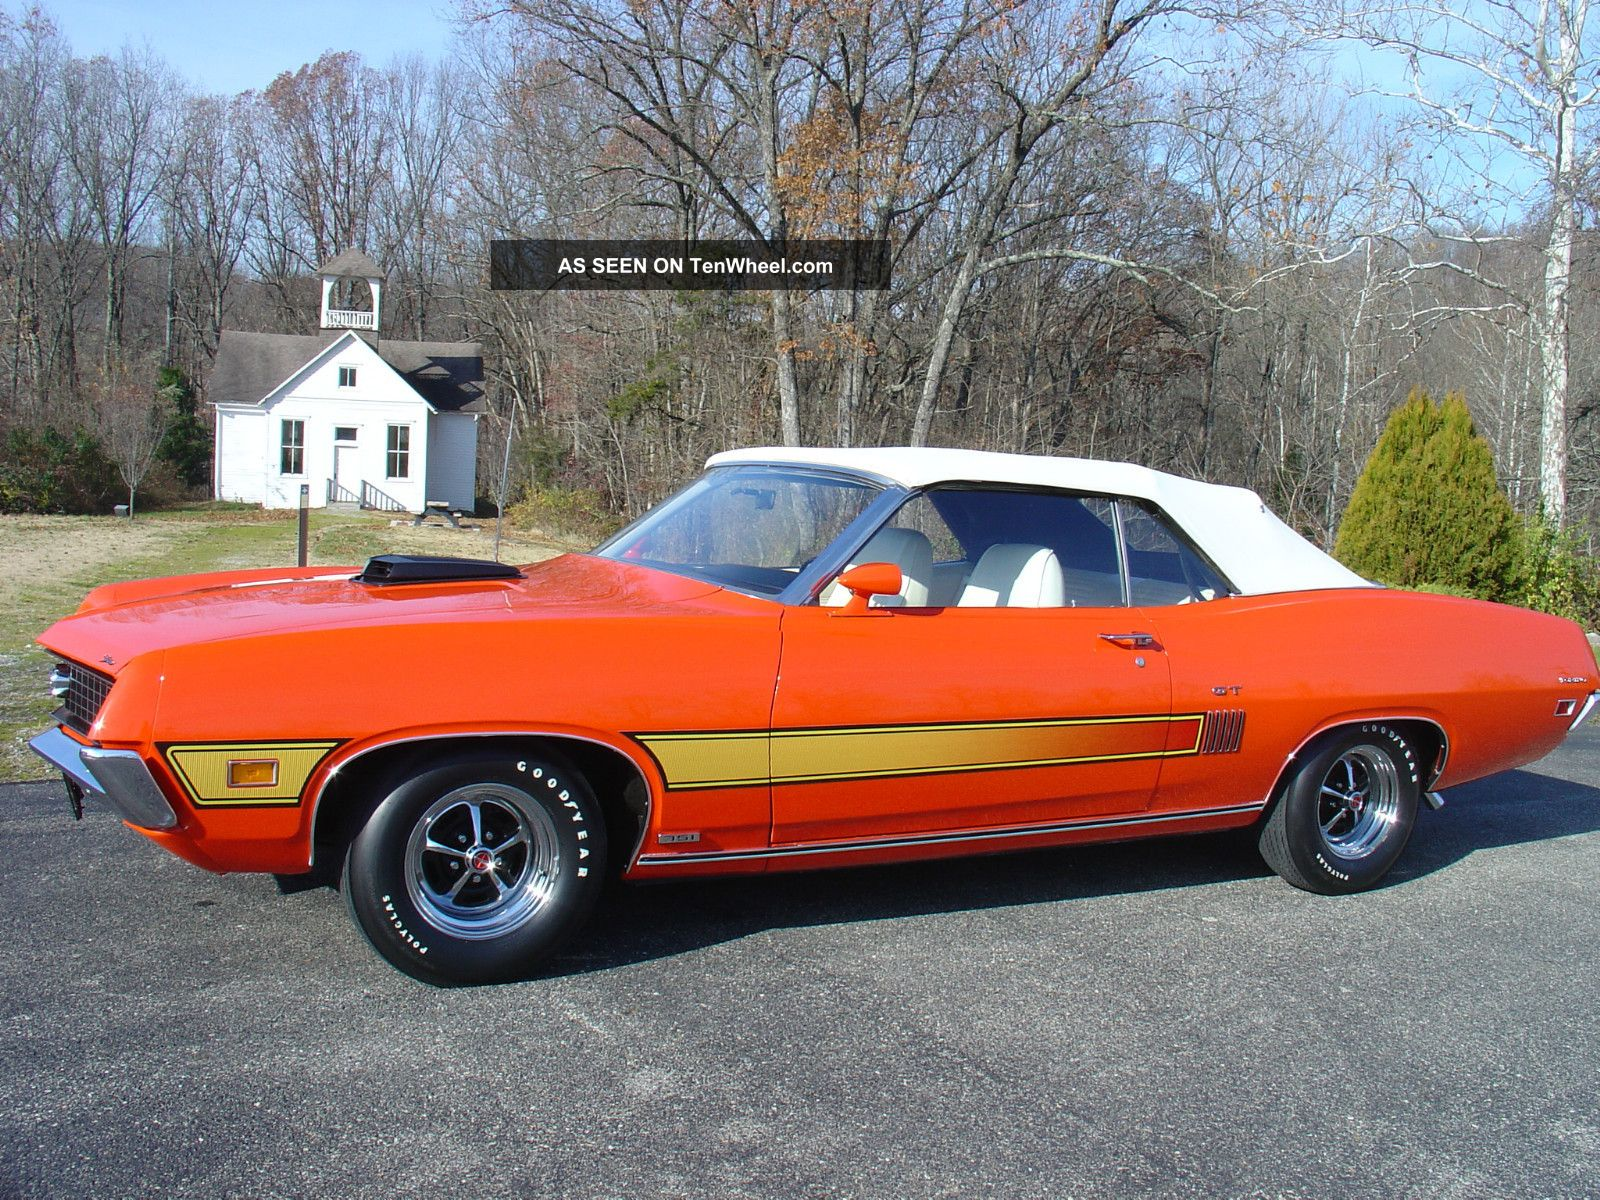 12064 1970 ford torino gt convertible shaker matching additionally Jeep Wrangler Trailcat Concept furthermore 32040 1972 el camino custom   454 ss car as well Wiring Diagram For A 74 Super Beetle in addition Plymouth Duster. on 1972 duster engine